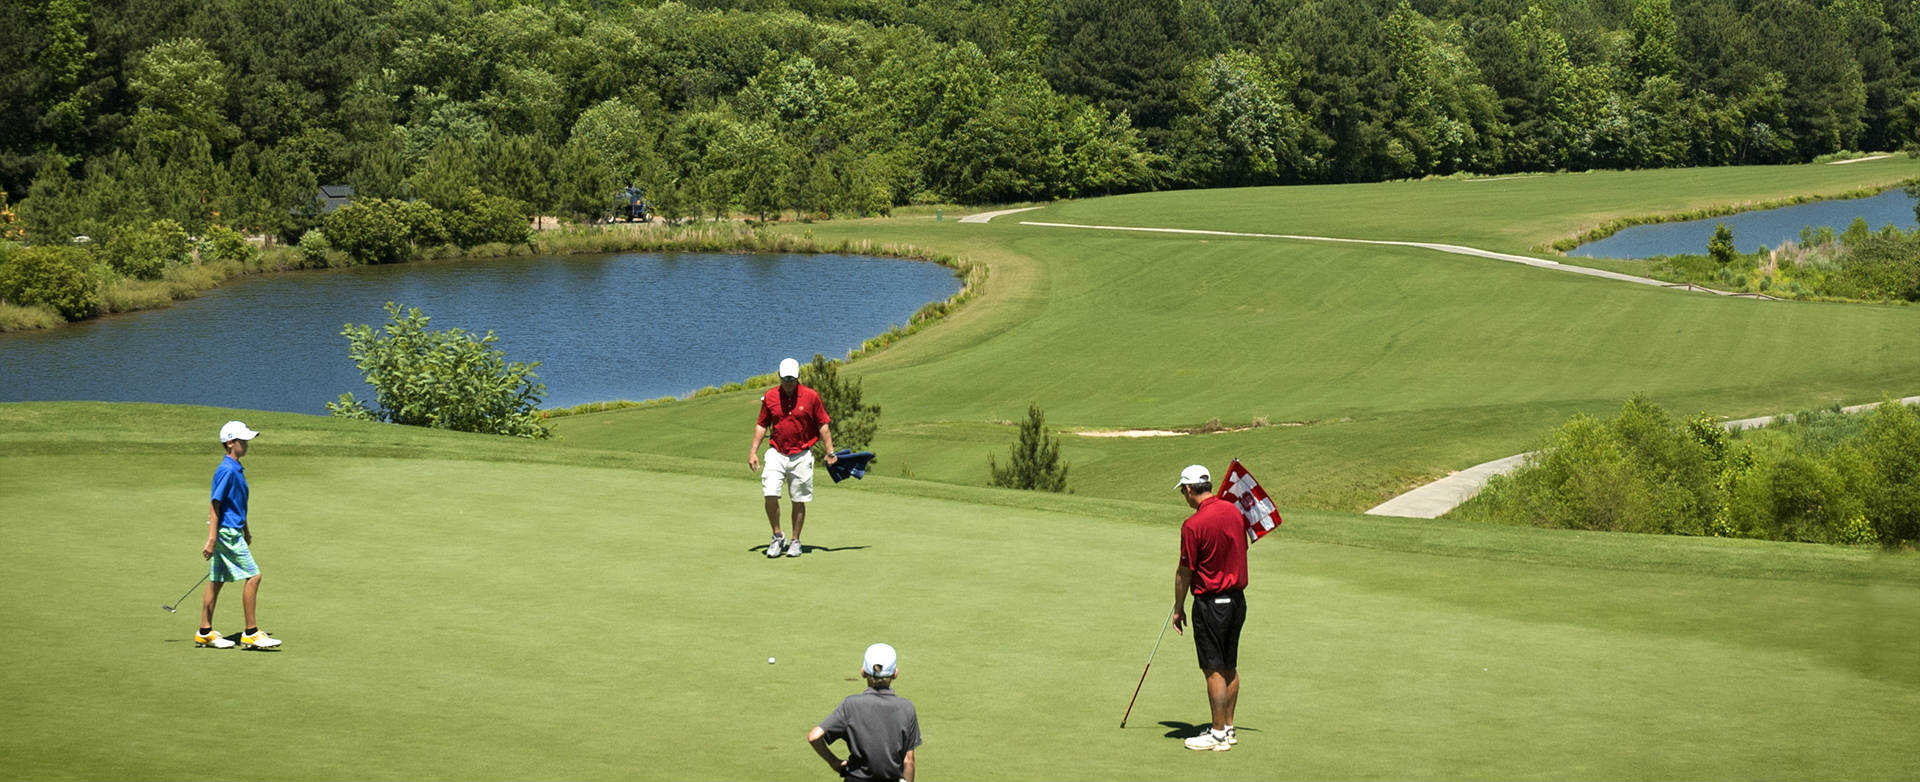 Apartments for rent in Raleigh with nearby golf courses